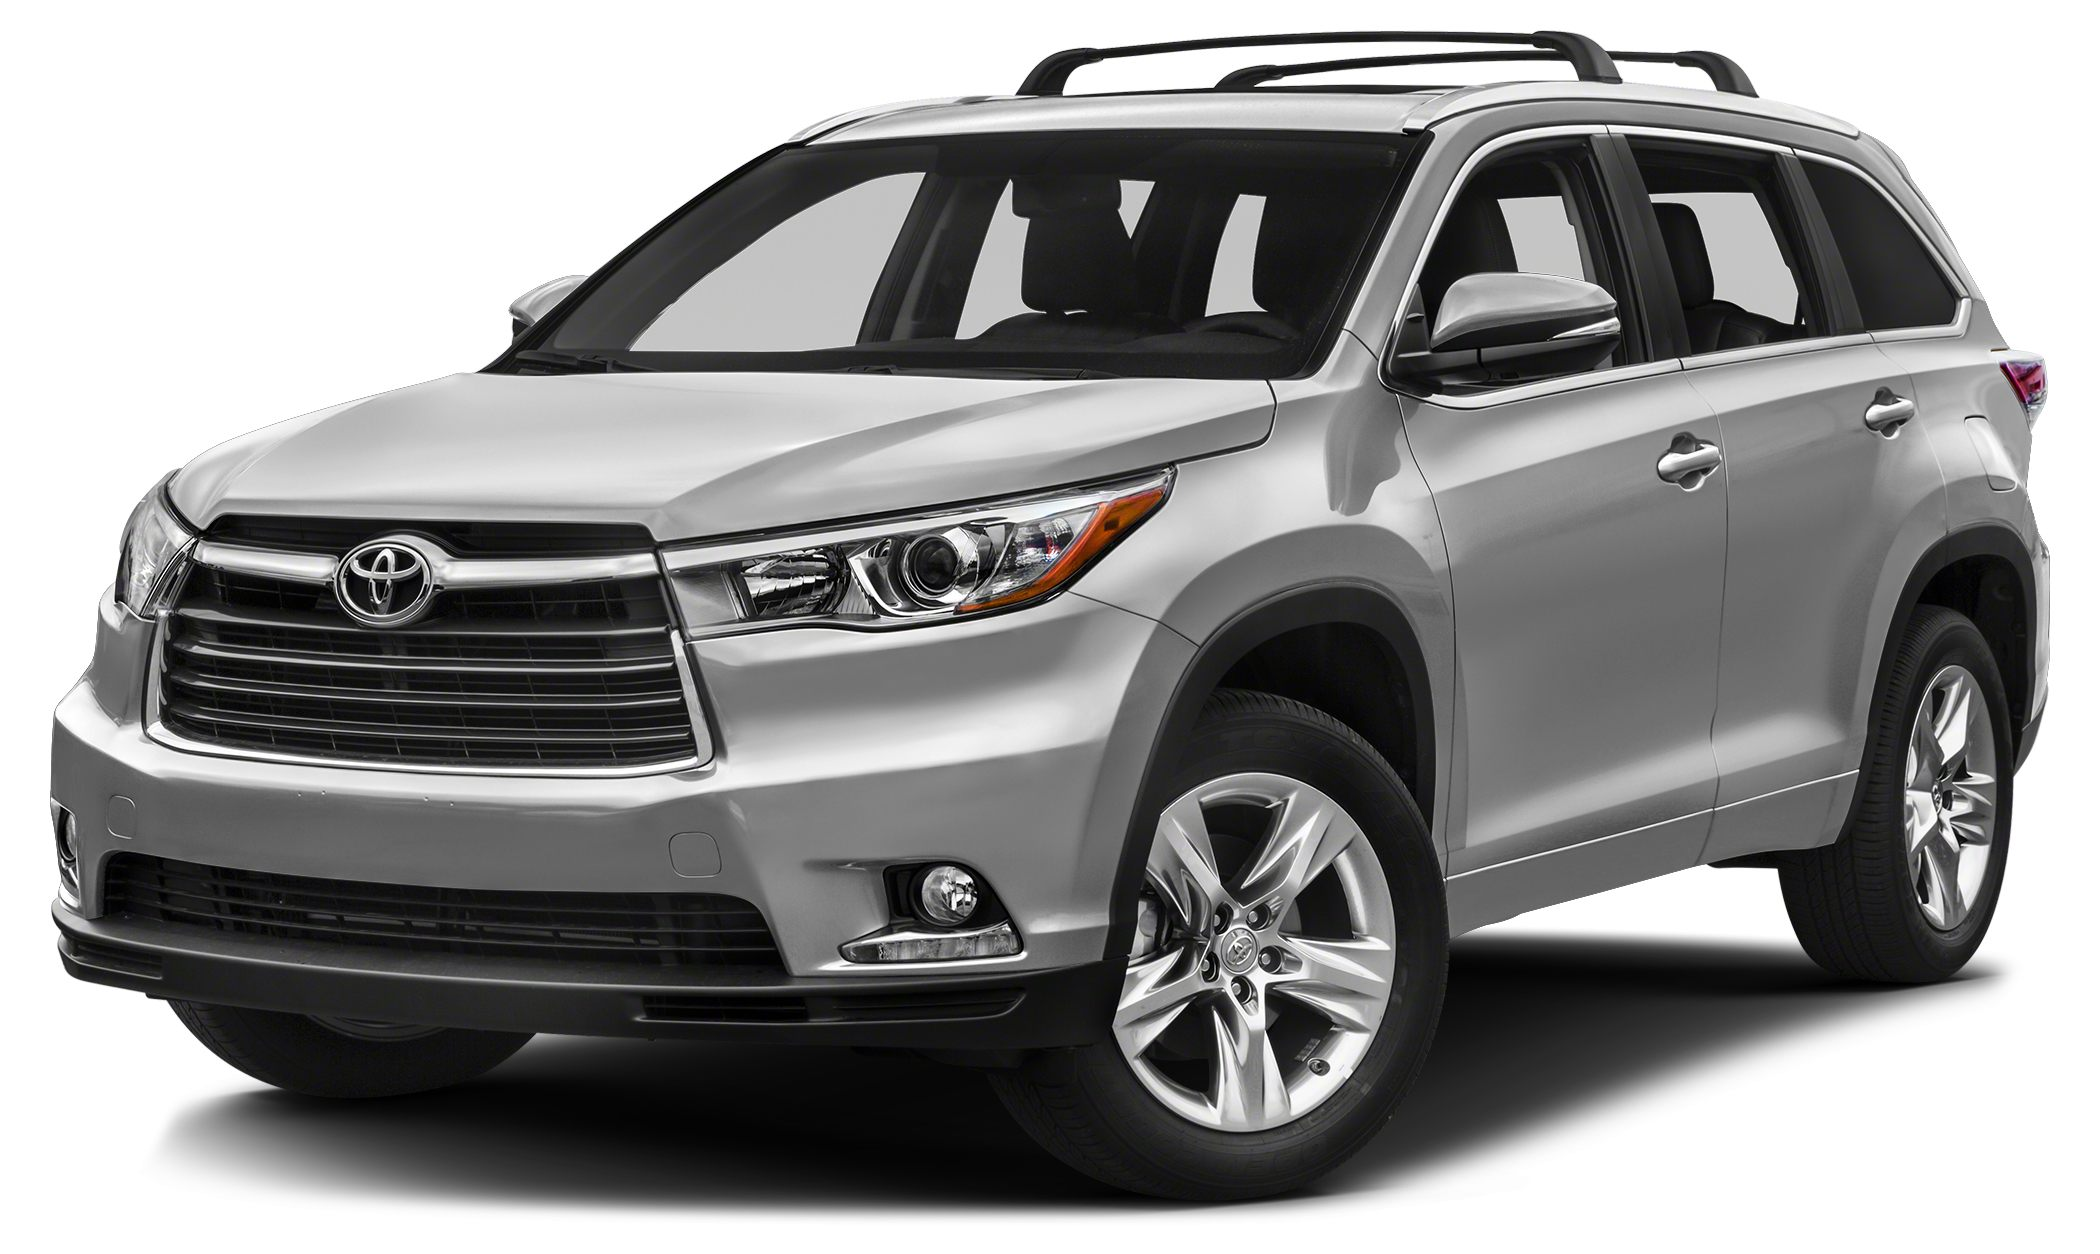 2015 Toyota Highlander Limited Platinum PRICED TO MOVE 200 below Kelley Blue Book EPA 24 MPG Hw